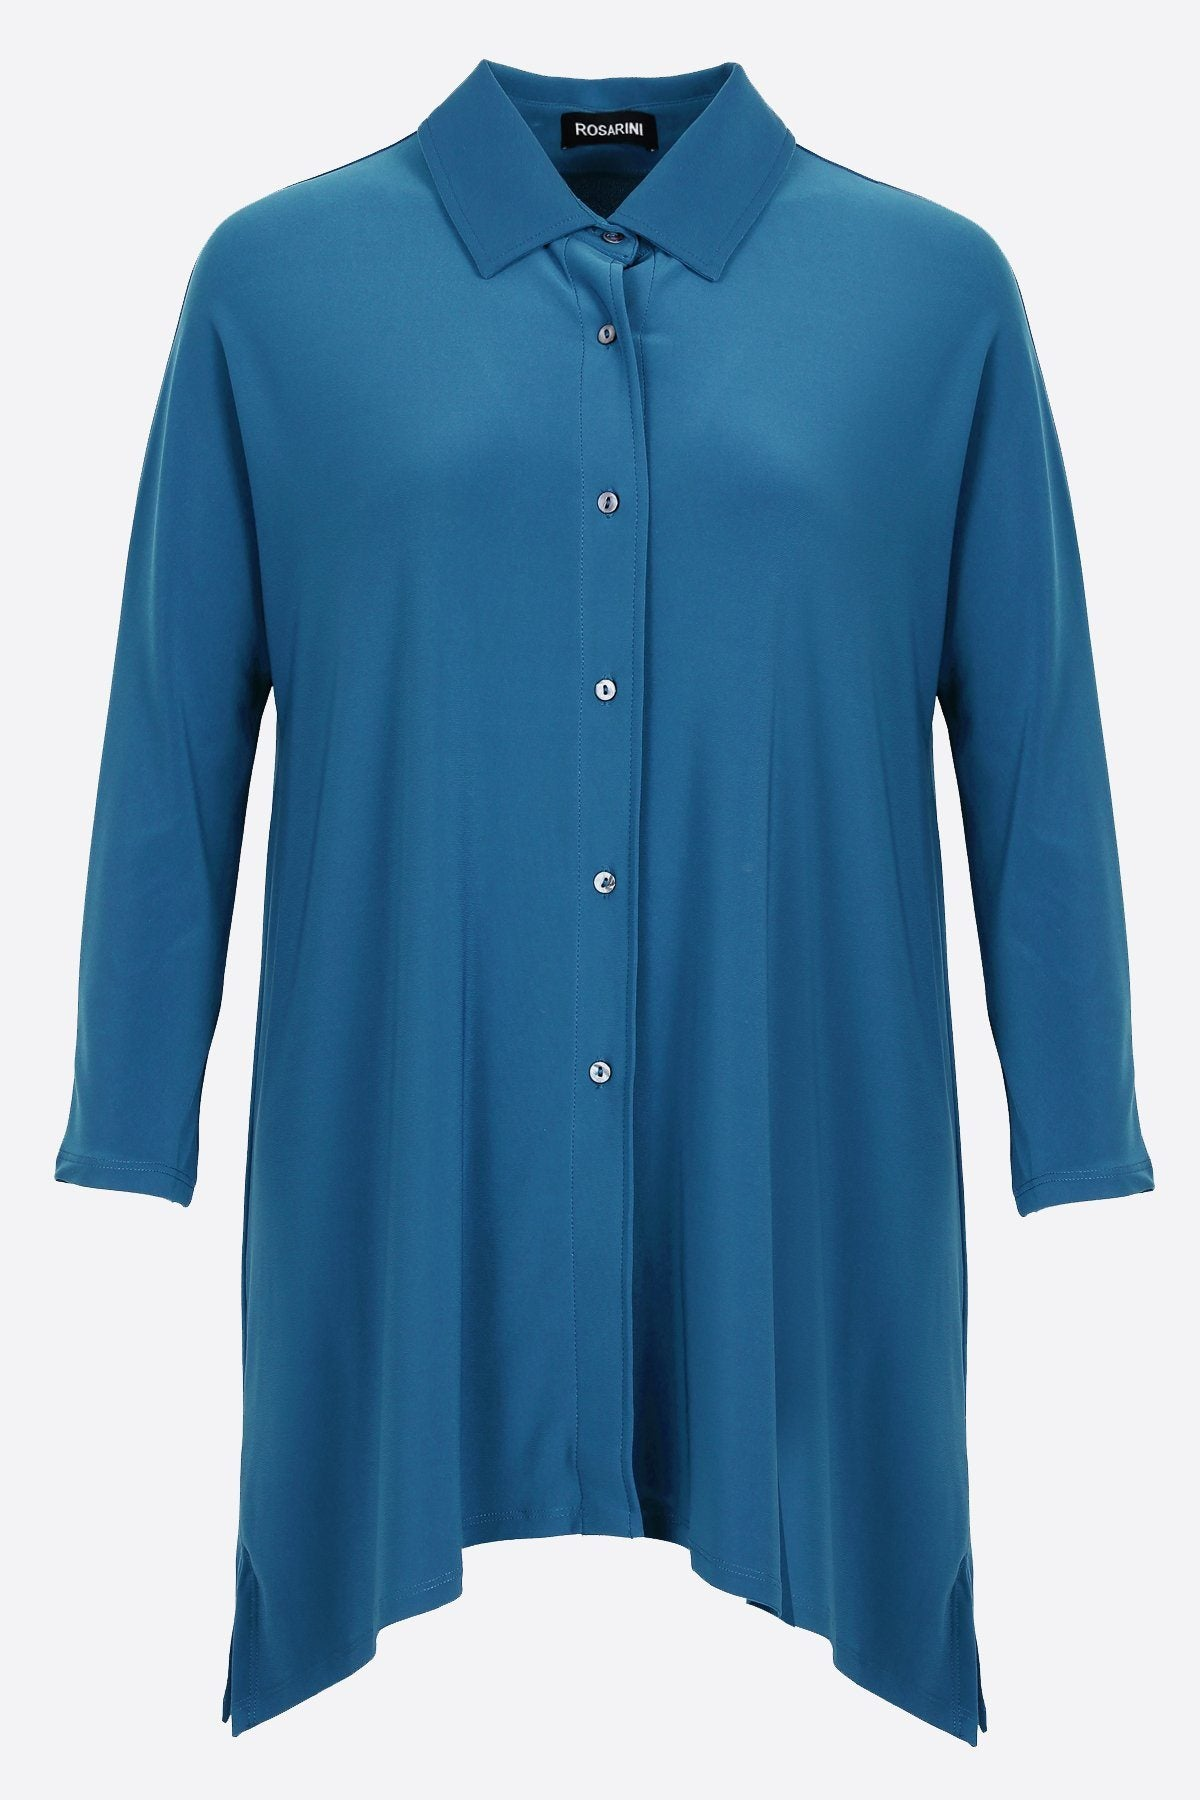 Women's Teal Button Shirt with Curved Hem 3/4 Sleeves Travel Shirt Rosarini